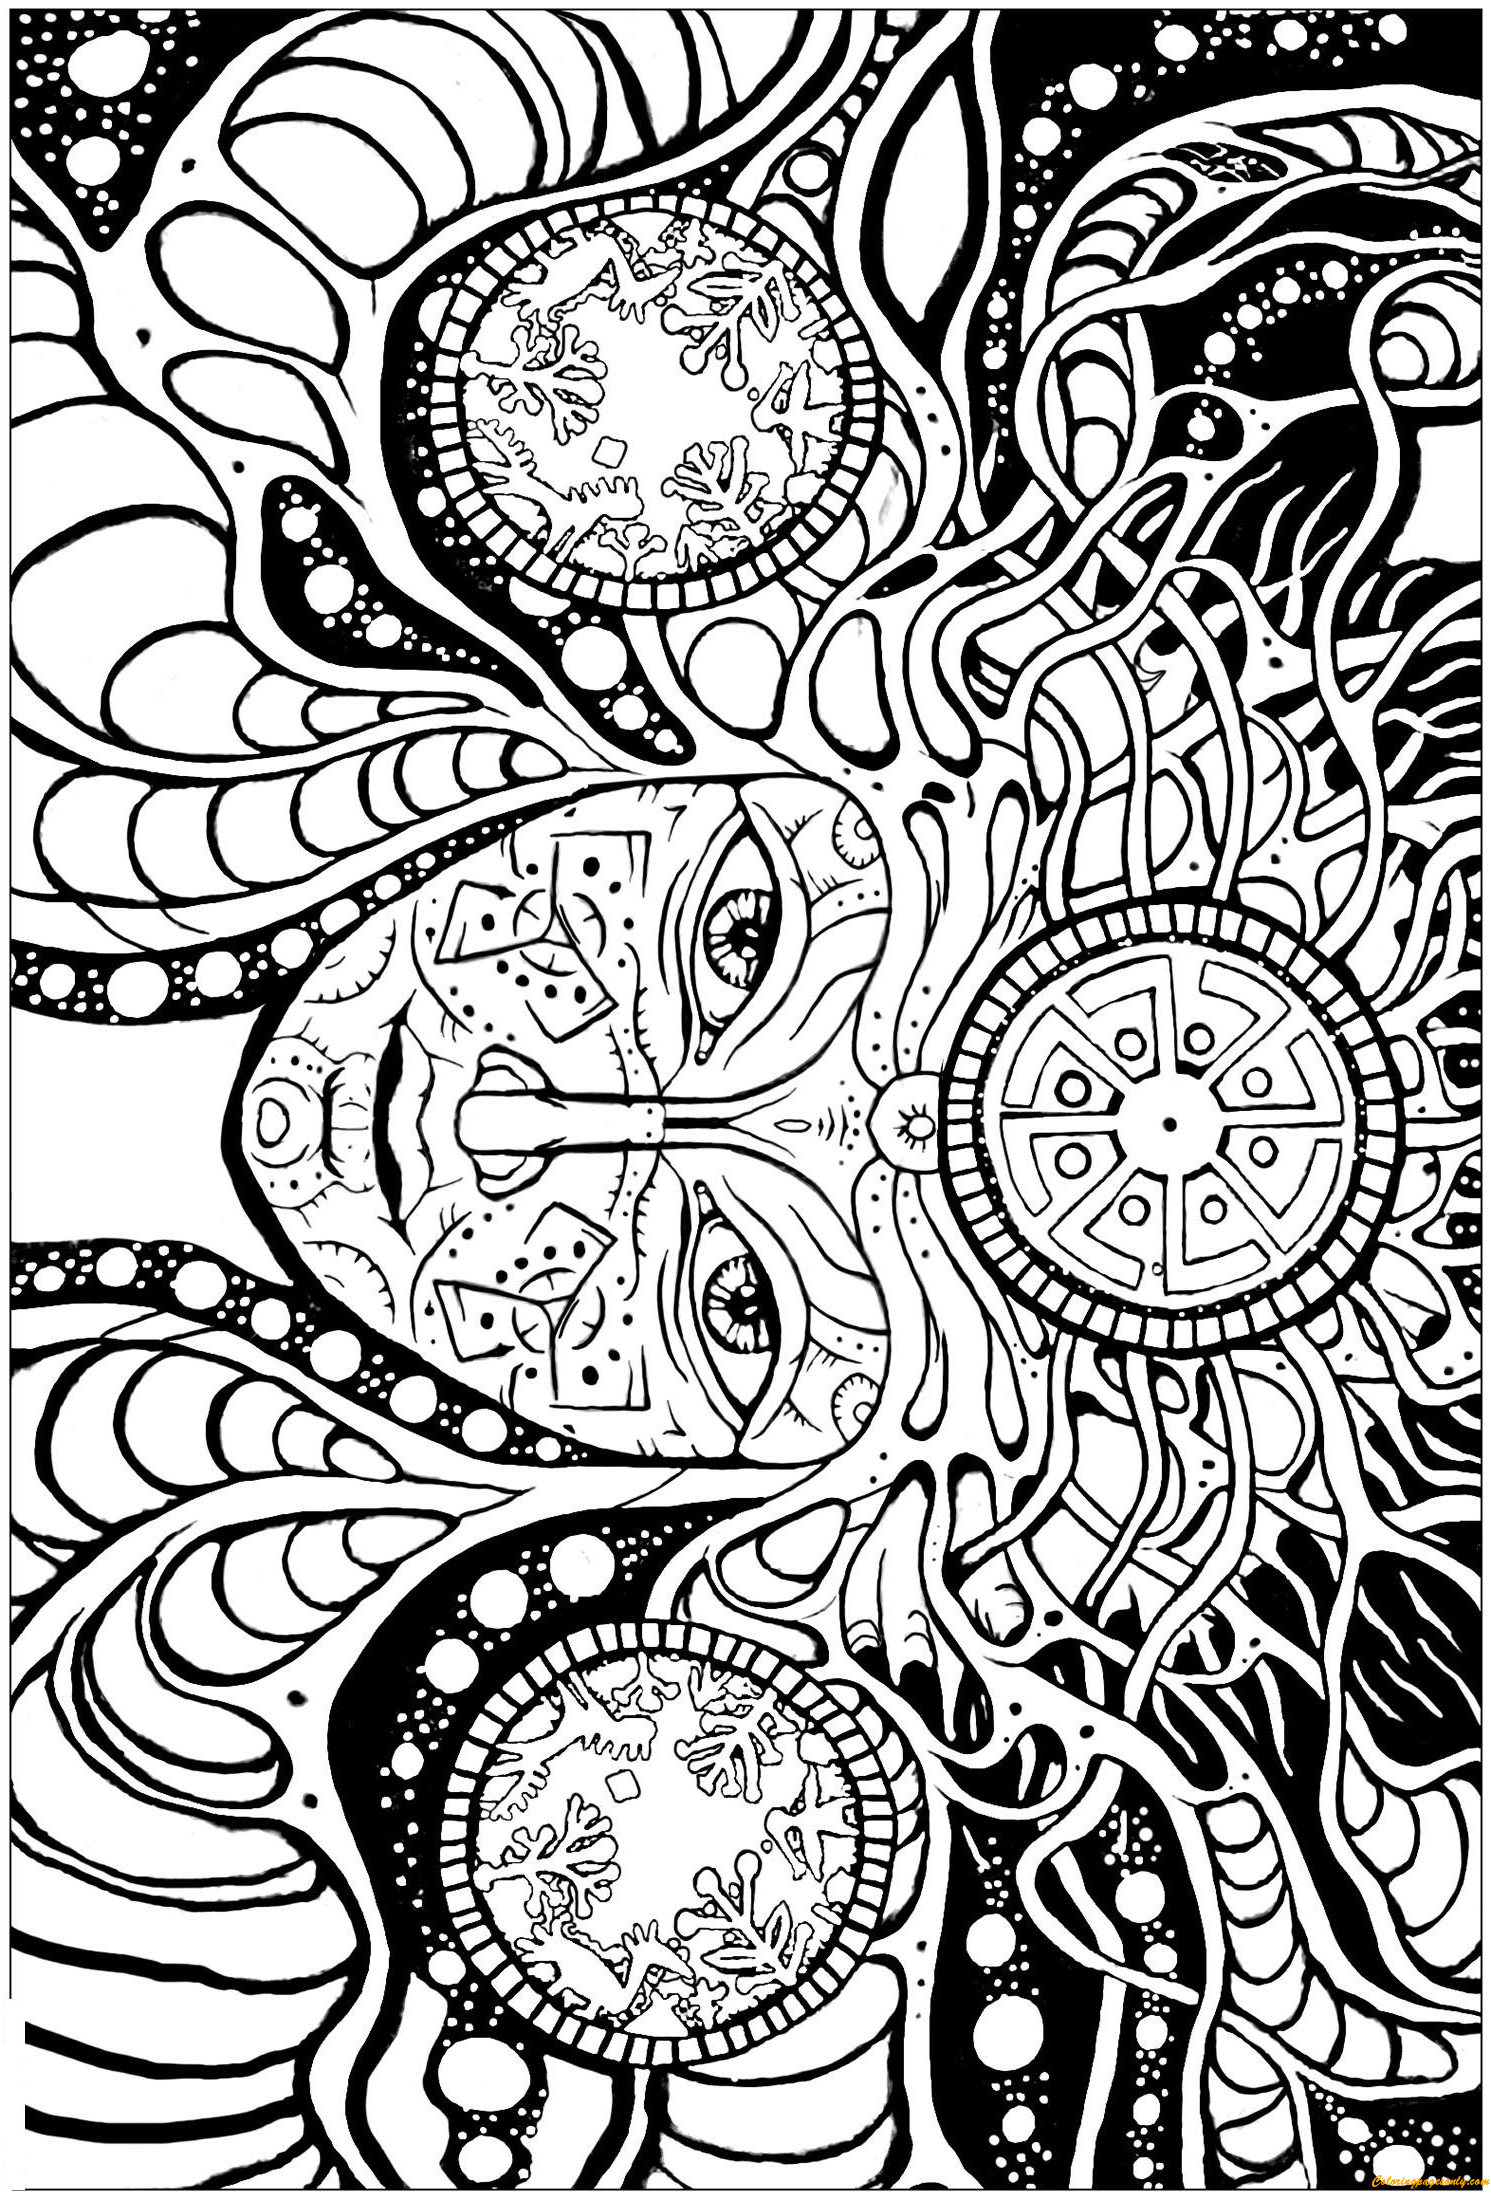 psychedelic coloring pages best 15 psychedelic coloring pages library coloring pages psychedelic coloring